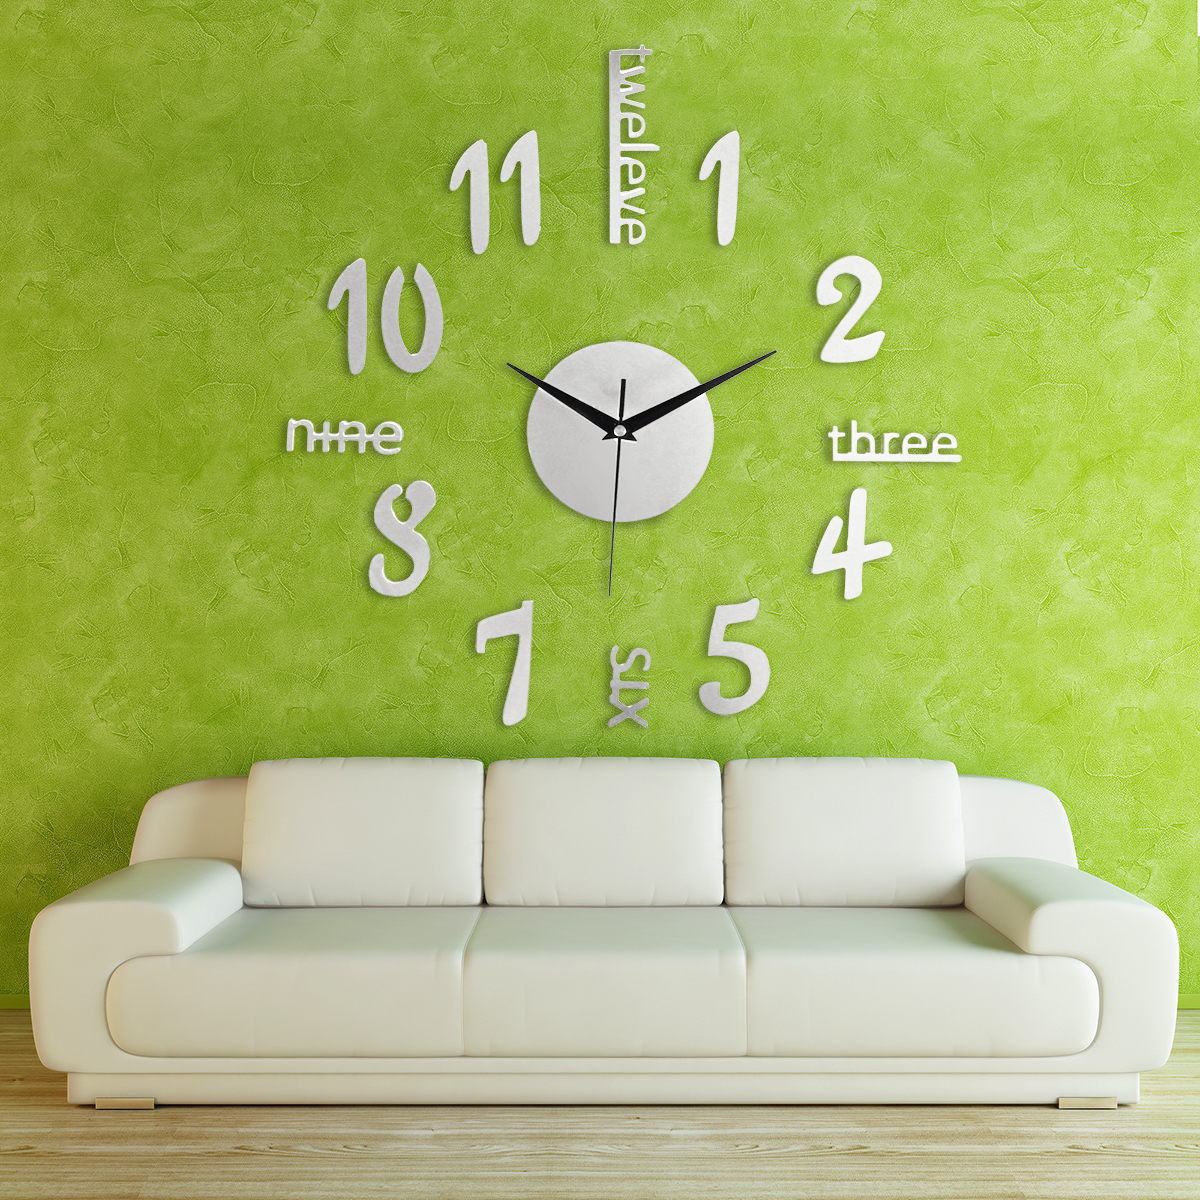 3D Mirror Acrylic Wall Clock Sticker DIY  Mirror decoration living room stickers new watch clocks Decor black/gold/silver Modern αυτοκολλητα τοιχου καθρεπτησ